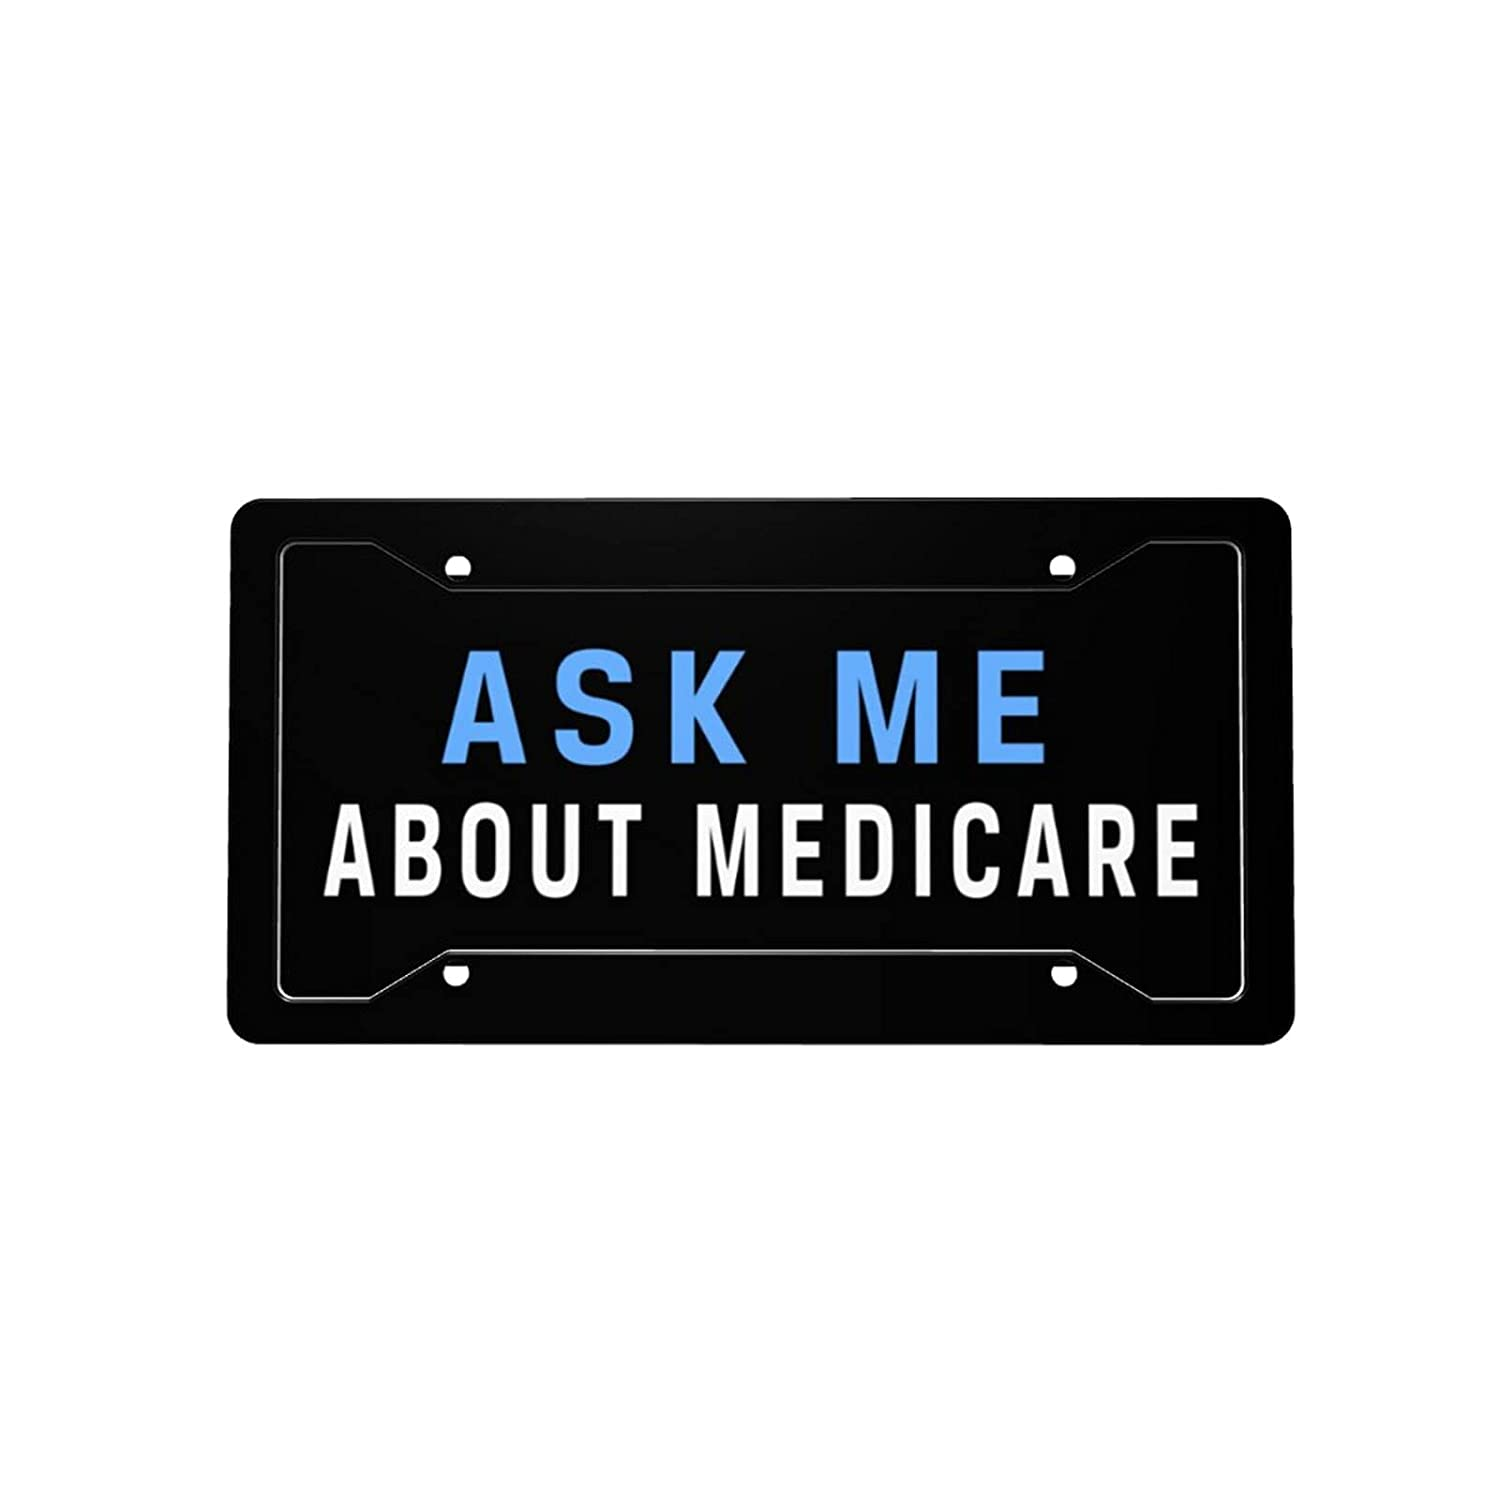 Ask Me Finally resale start About Medicare License Plate Front Car Decorative Vanity Sale special price